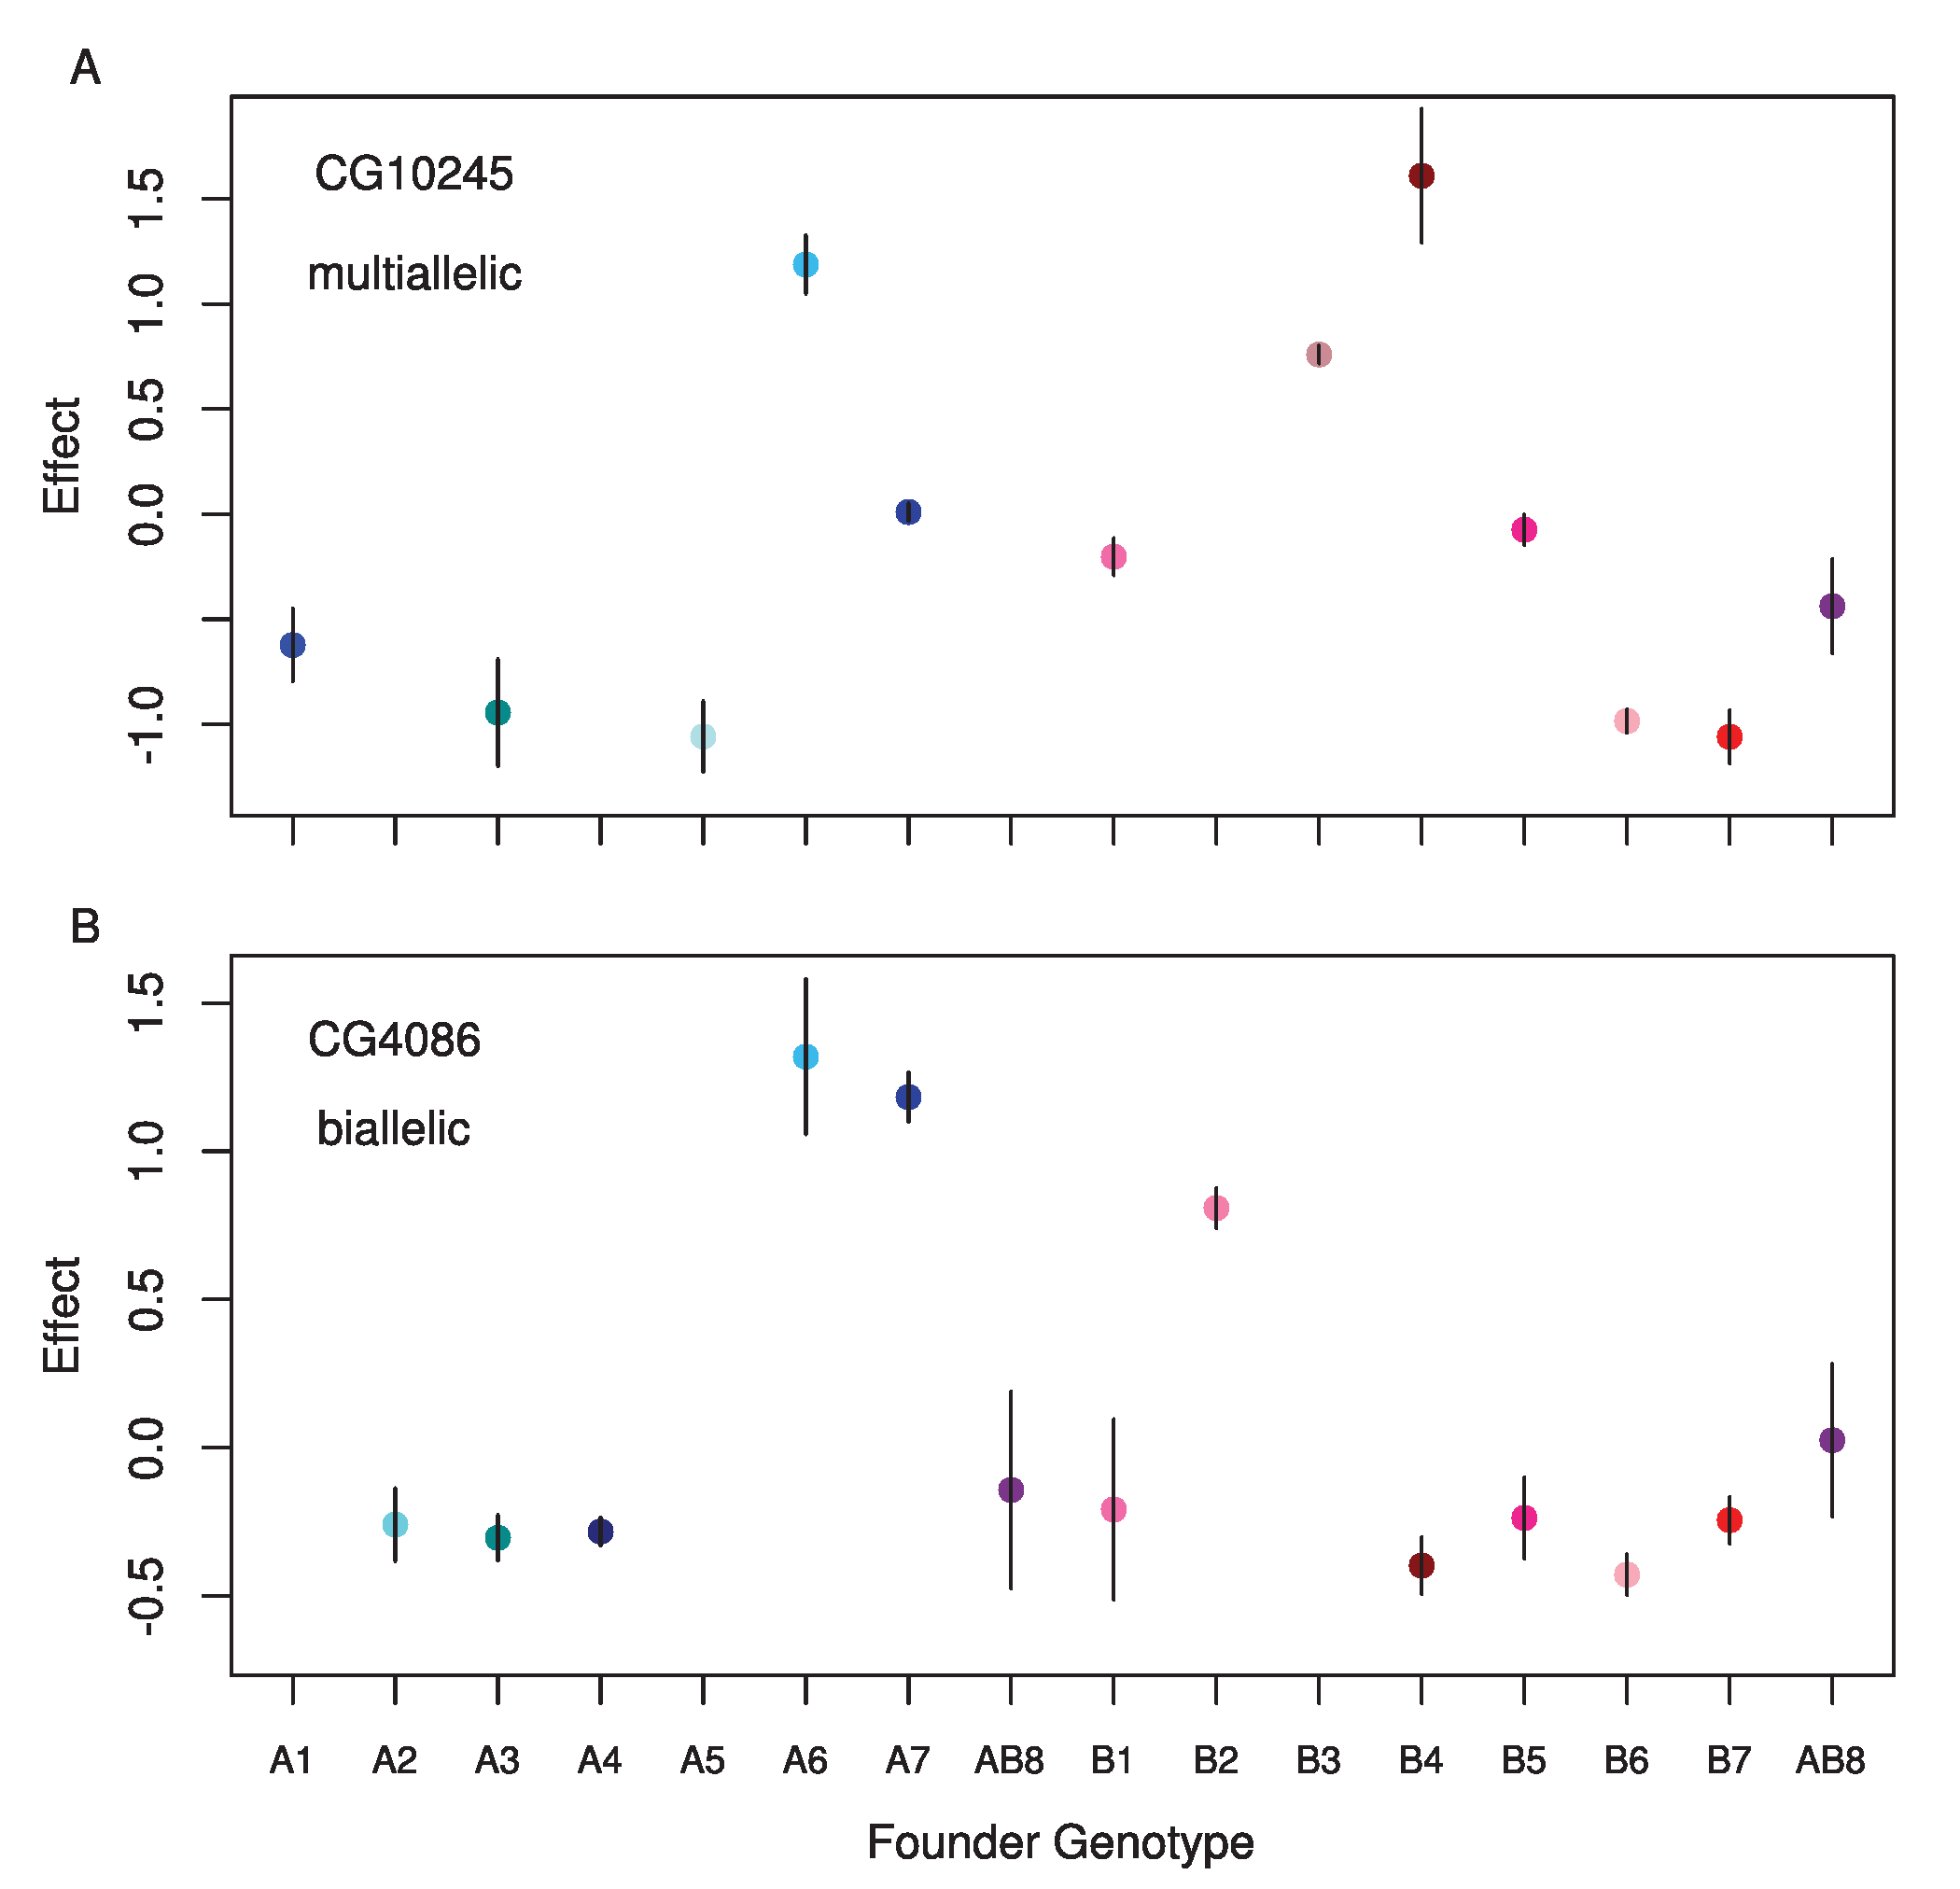 Standardized estimated means for each founder genotype for single observed <i>cis</i>-eQTL where A) the full model is the best model, and B) a two allele model is the best model.